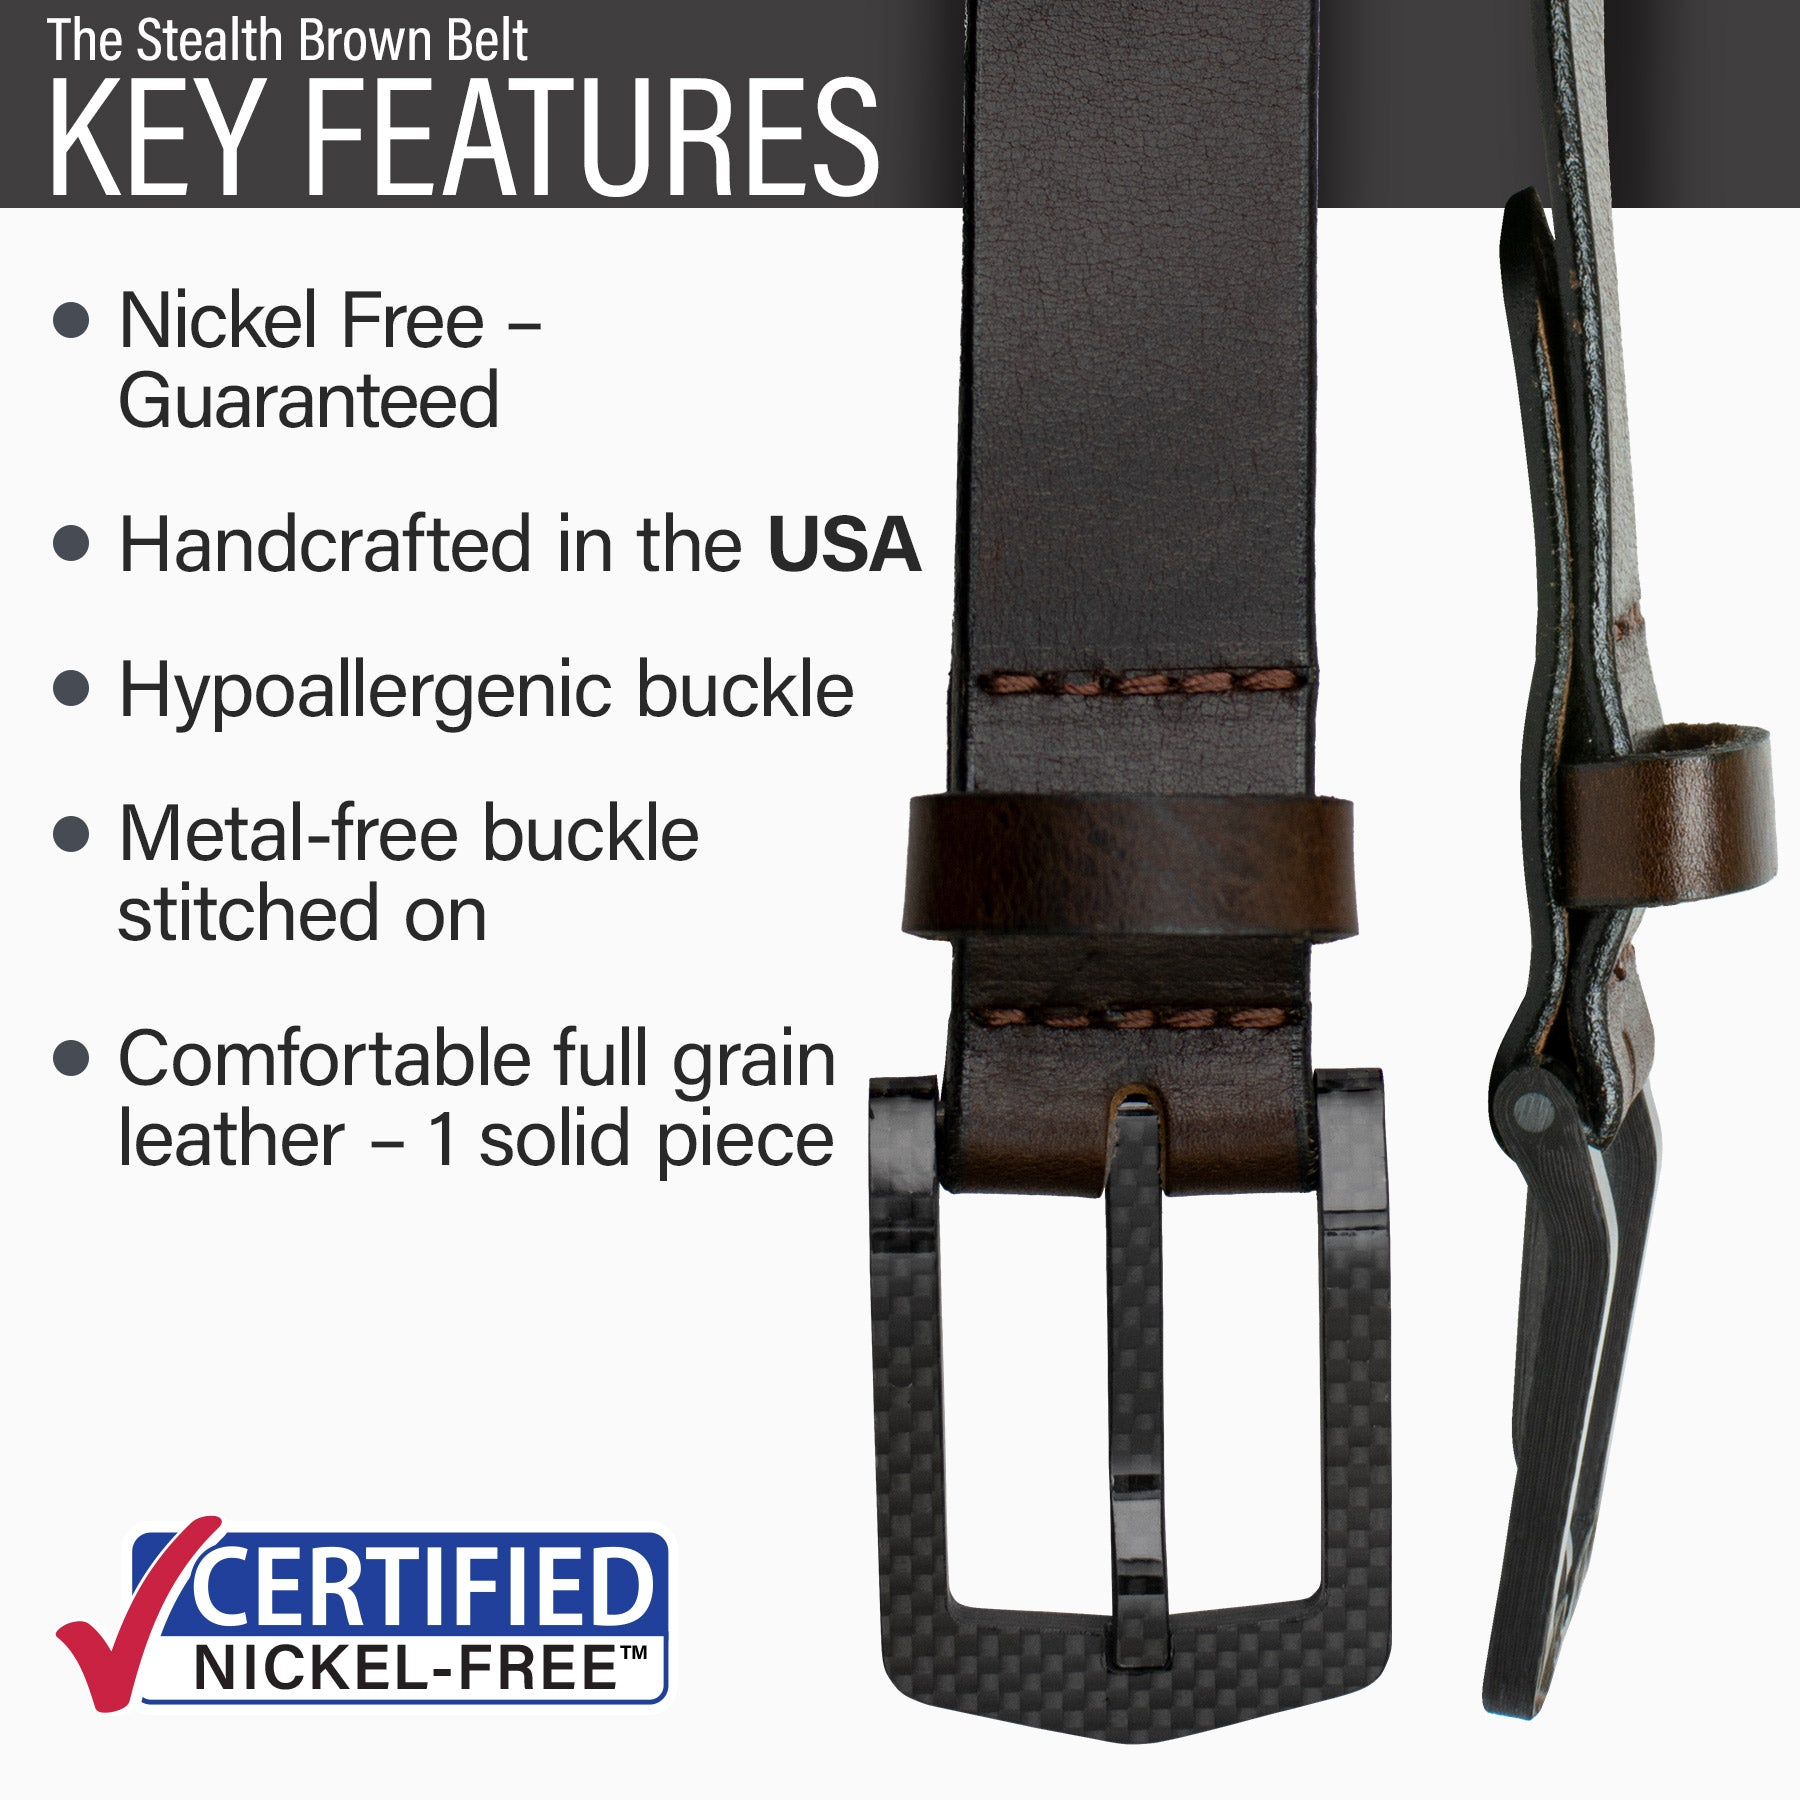 Key features of Stealth Nickel Free Brown Leather Belt | Hypoallergenic buckle, made in the USA, stitched on nickel-free buckle, metal-free carbon fiber buckle, full grain leather